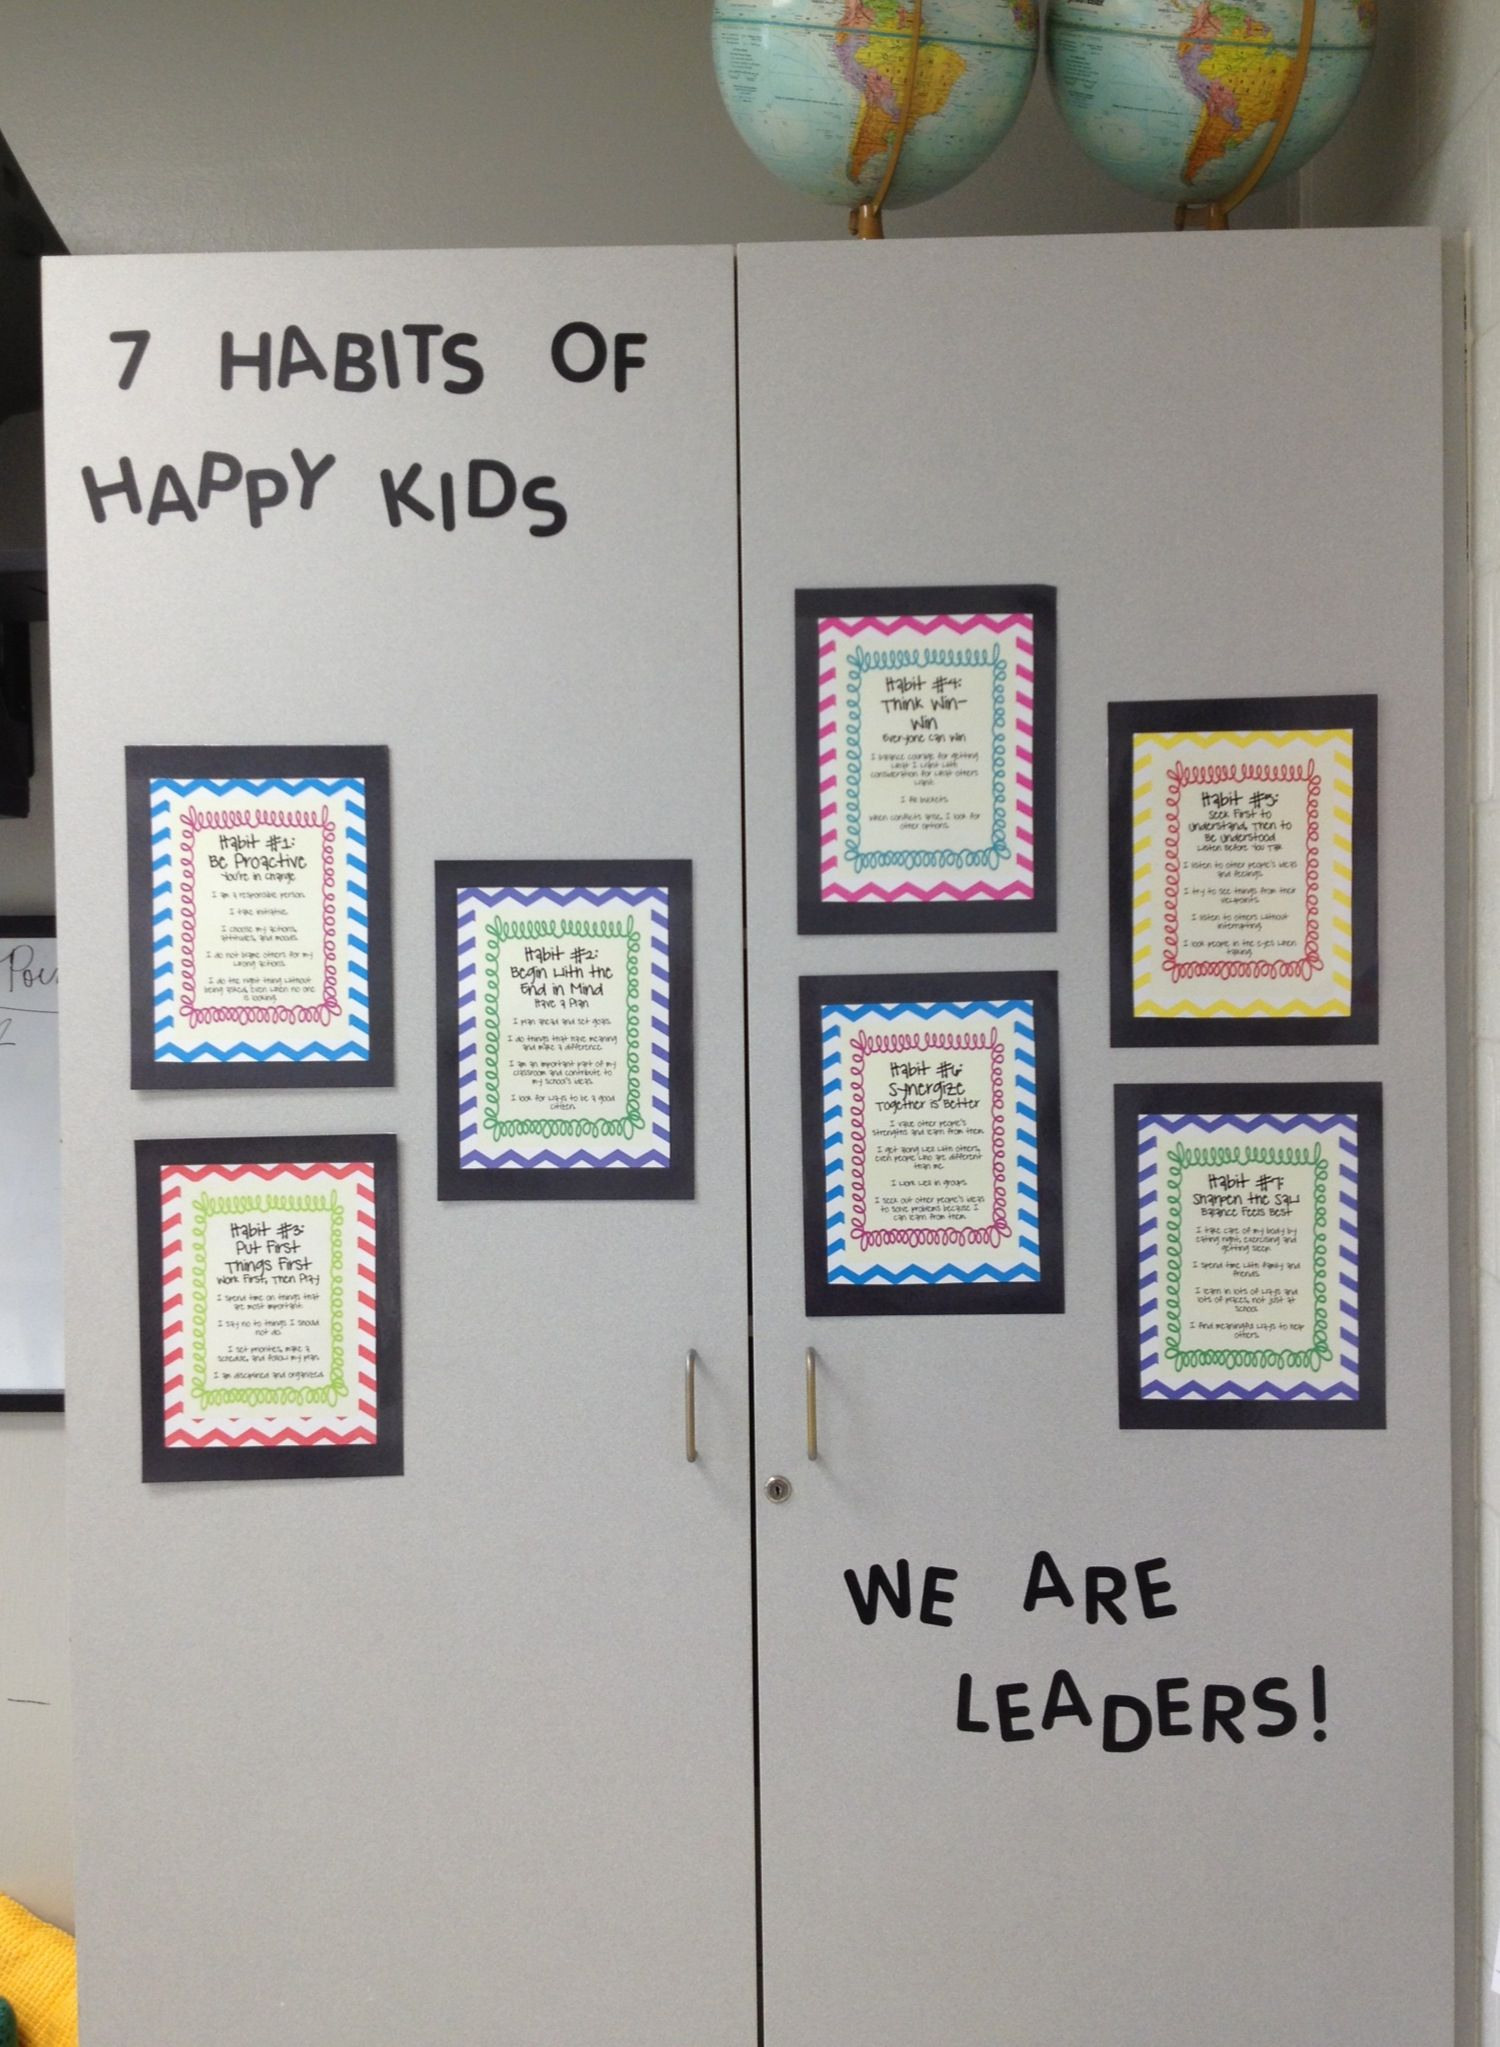 7 Habits Of Happy Kids Posters In My Classroom Find Them Here Teacherspayteachers